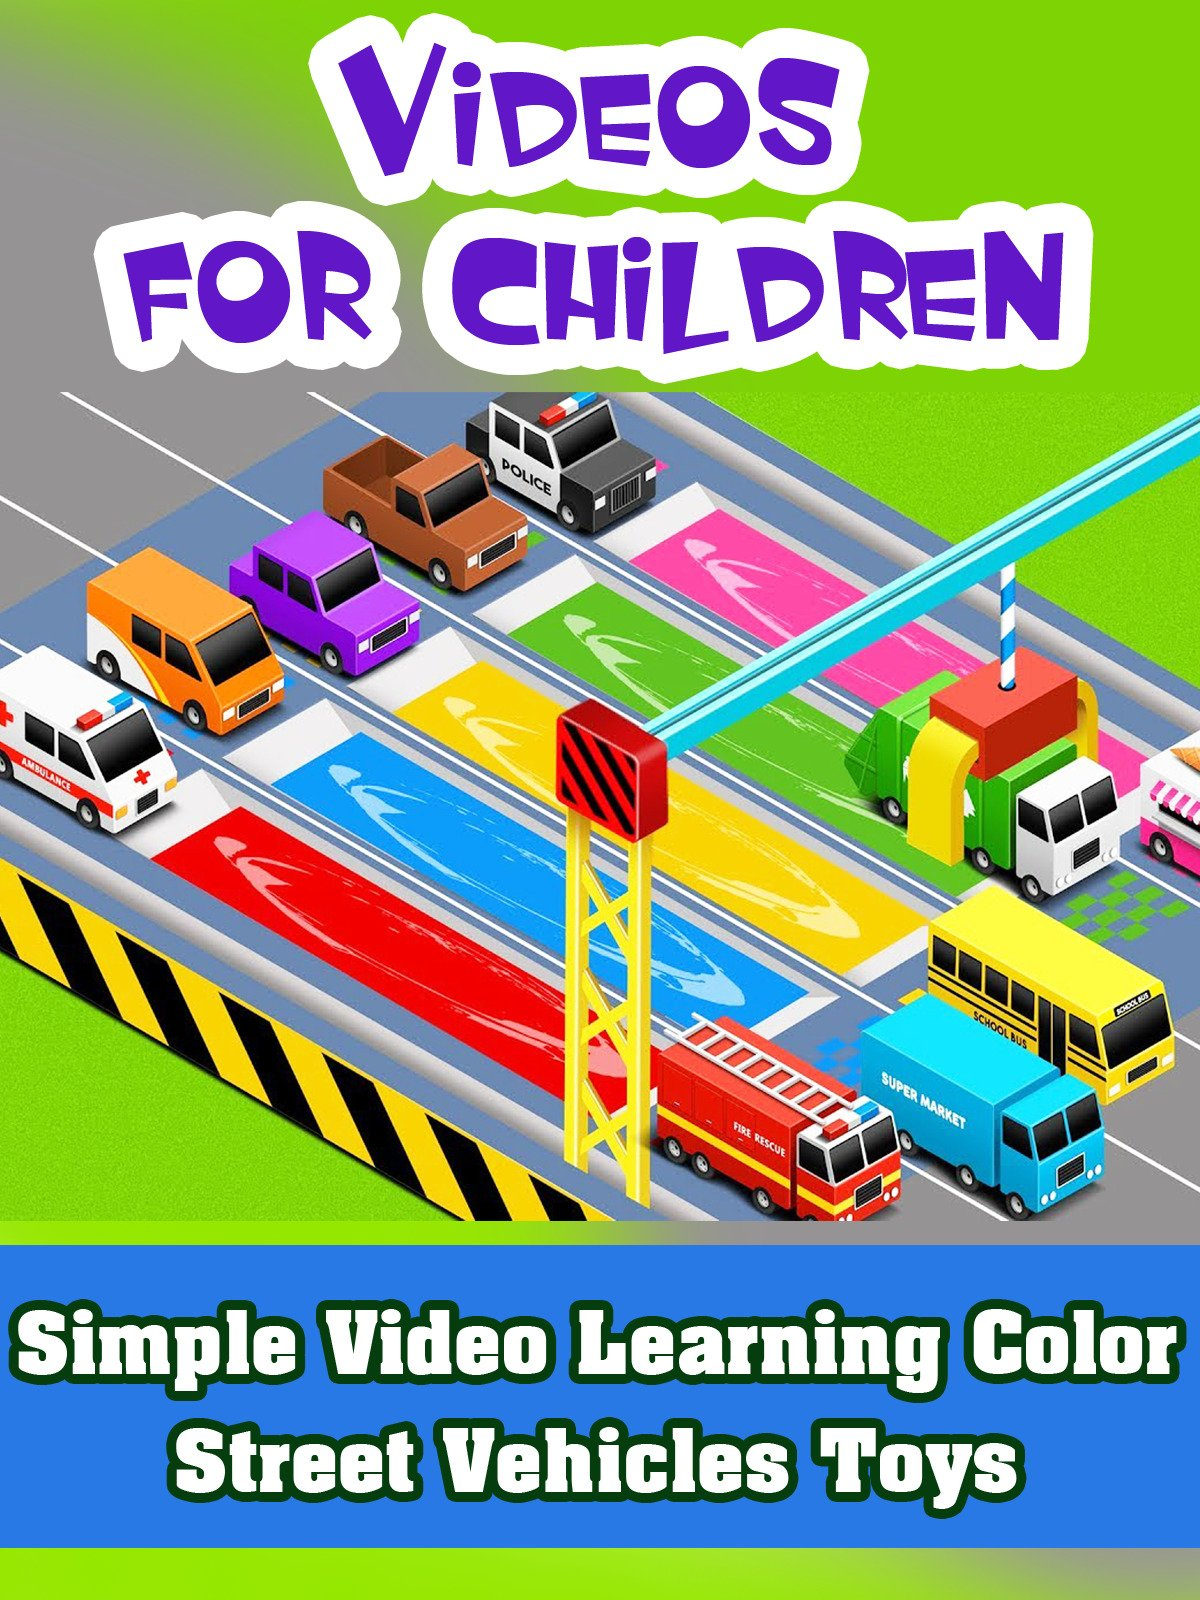 Simple Video Learning Color Street Vehicles Toys